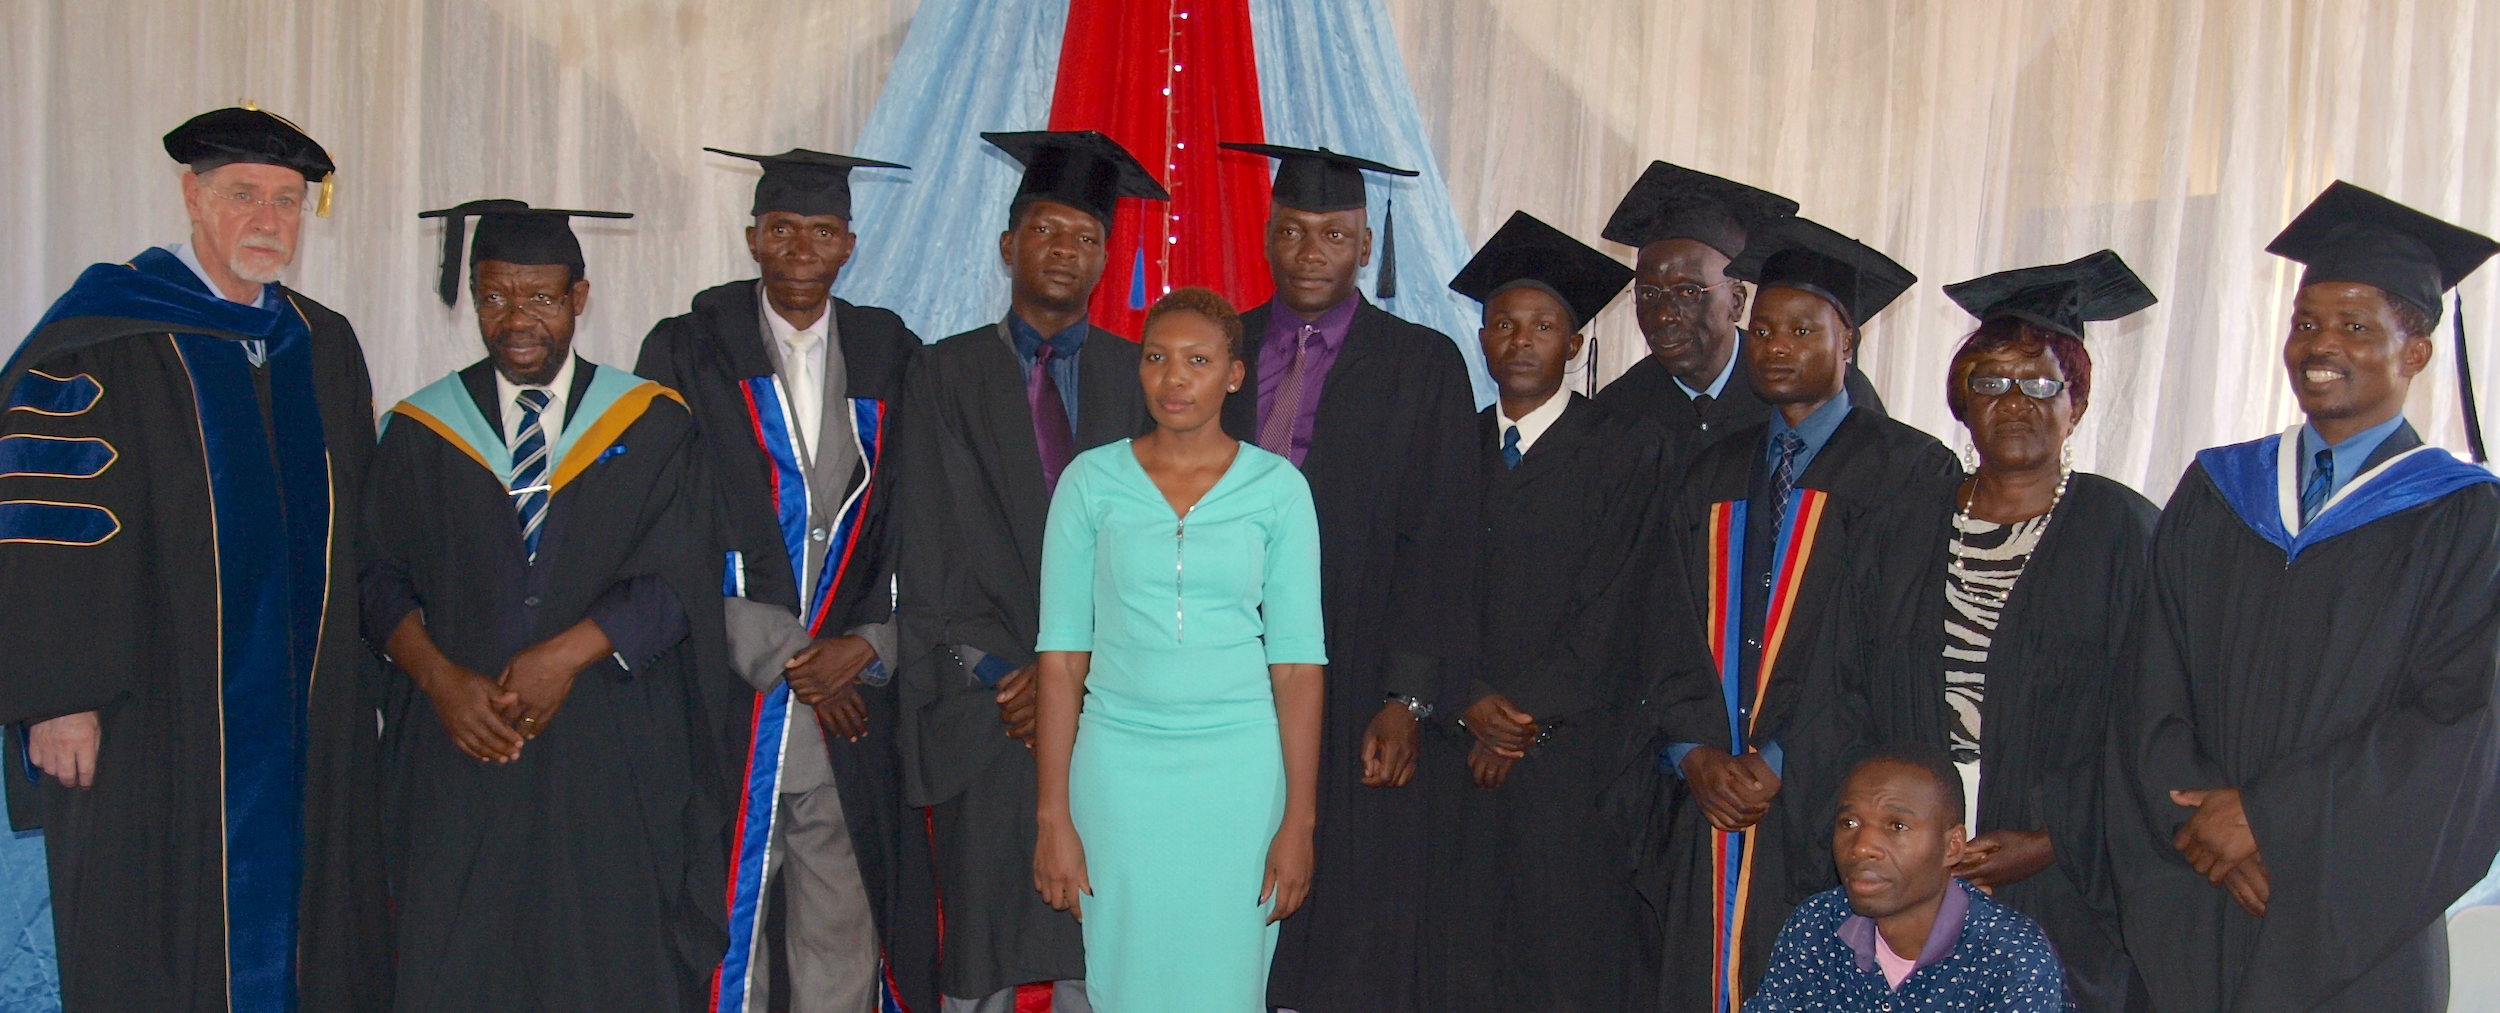 Students and staff gather for the graduation ceremony